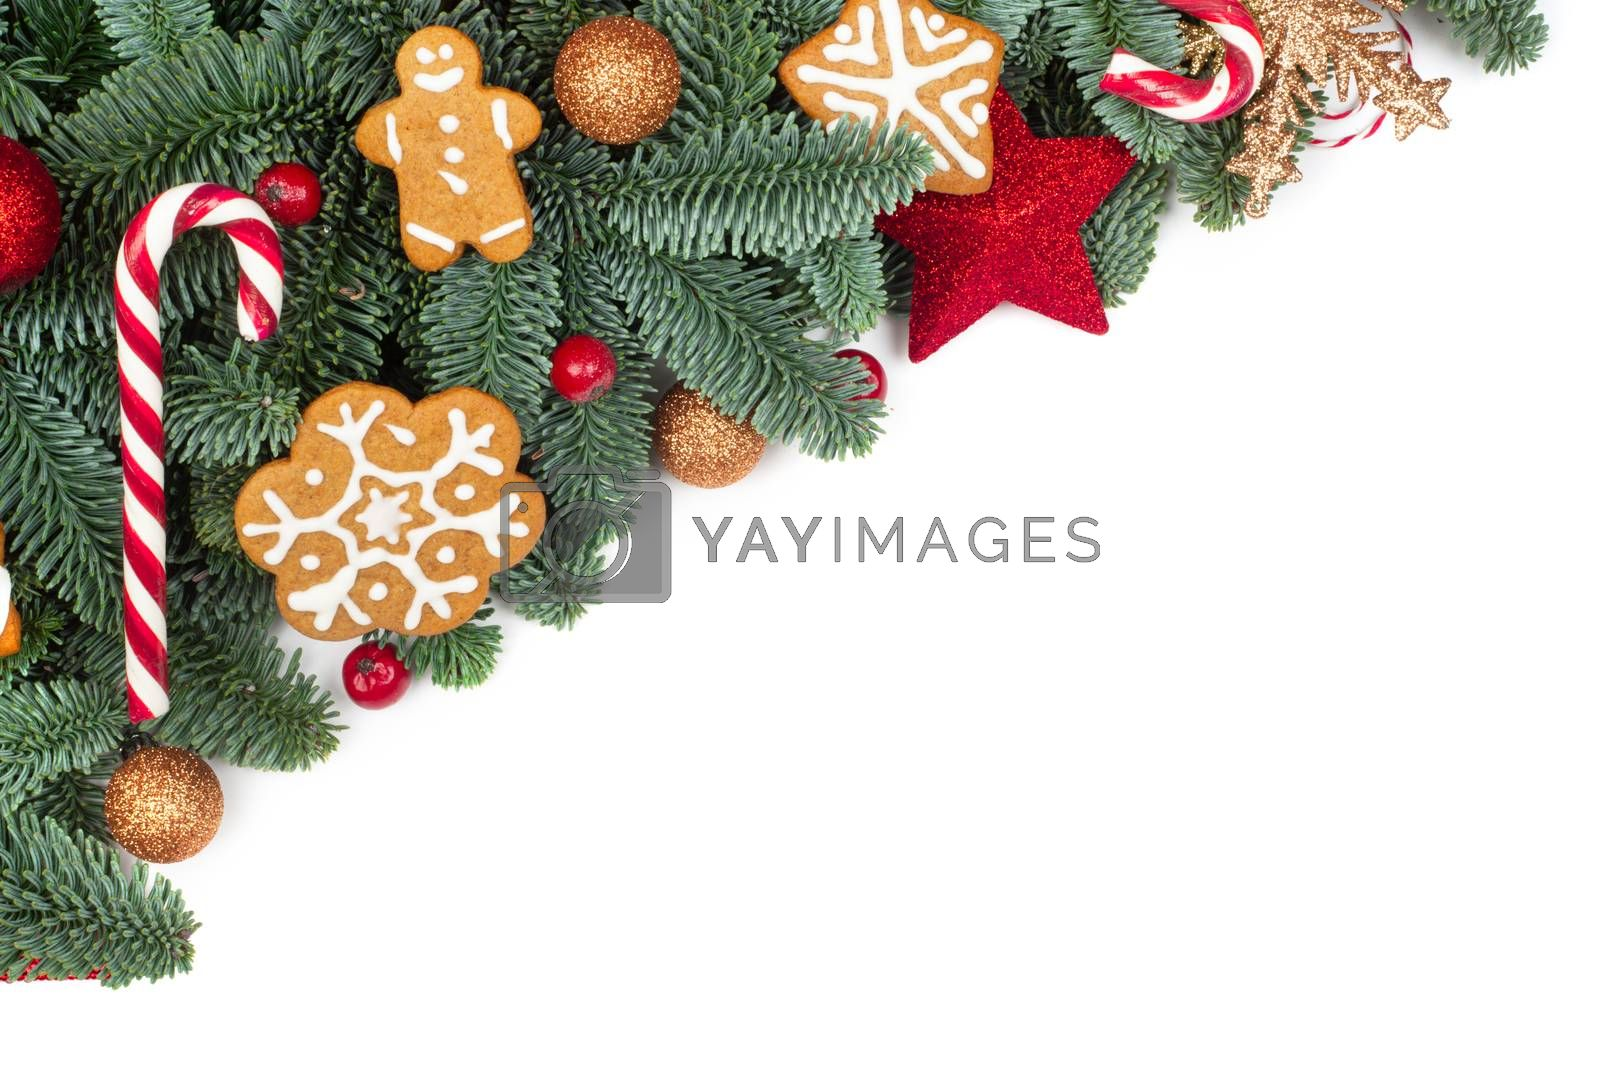 Christmas design boder frame greeting card of noble fir tree branches cookies and baubles isolated on white background